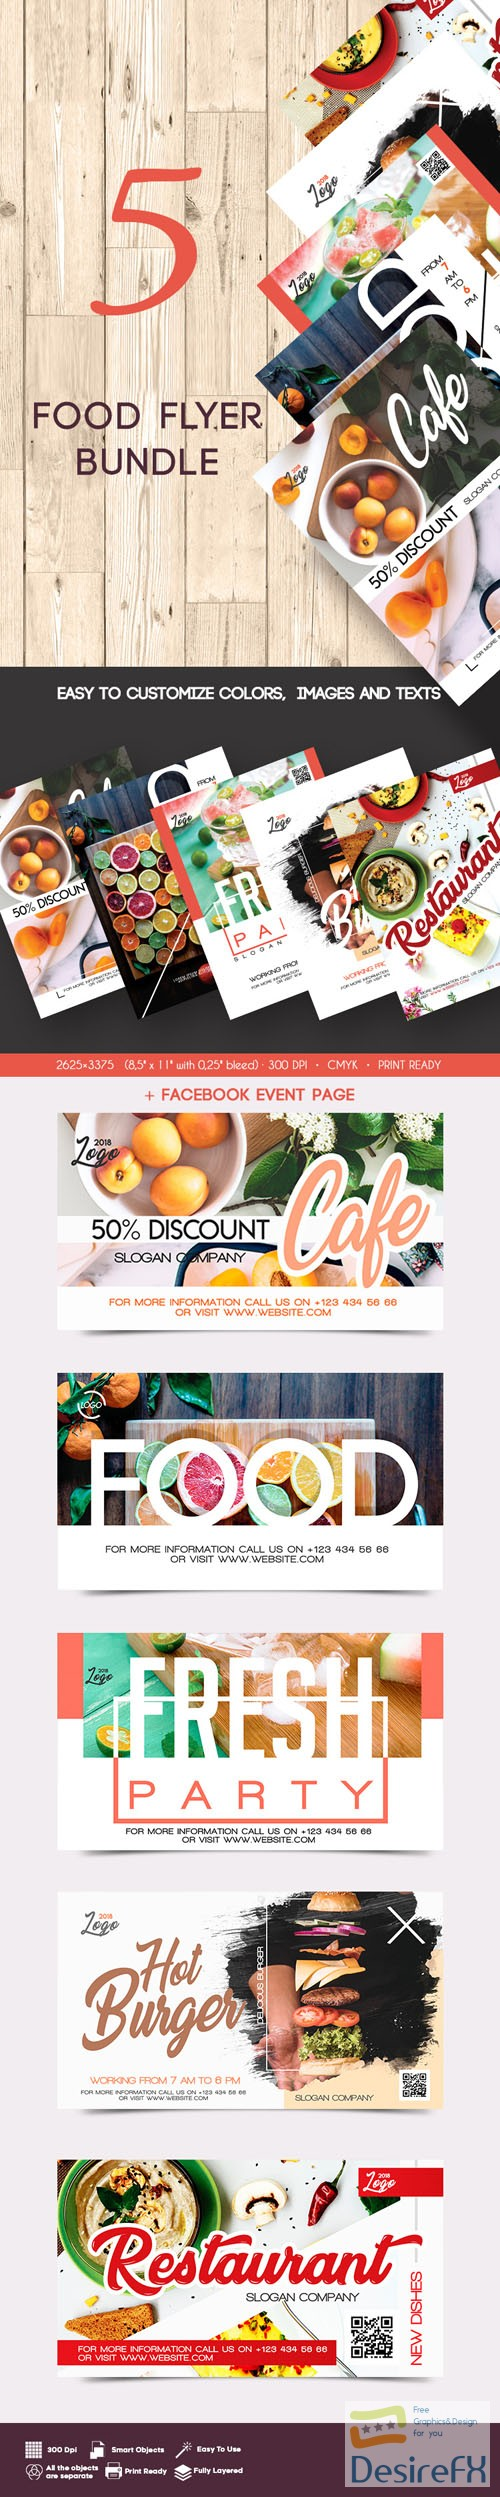 layered-psd - 5 Food Flyer Bundle in PSD